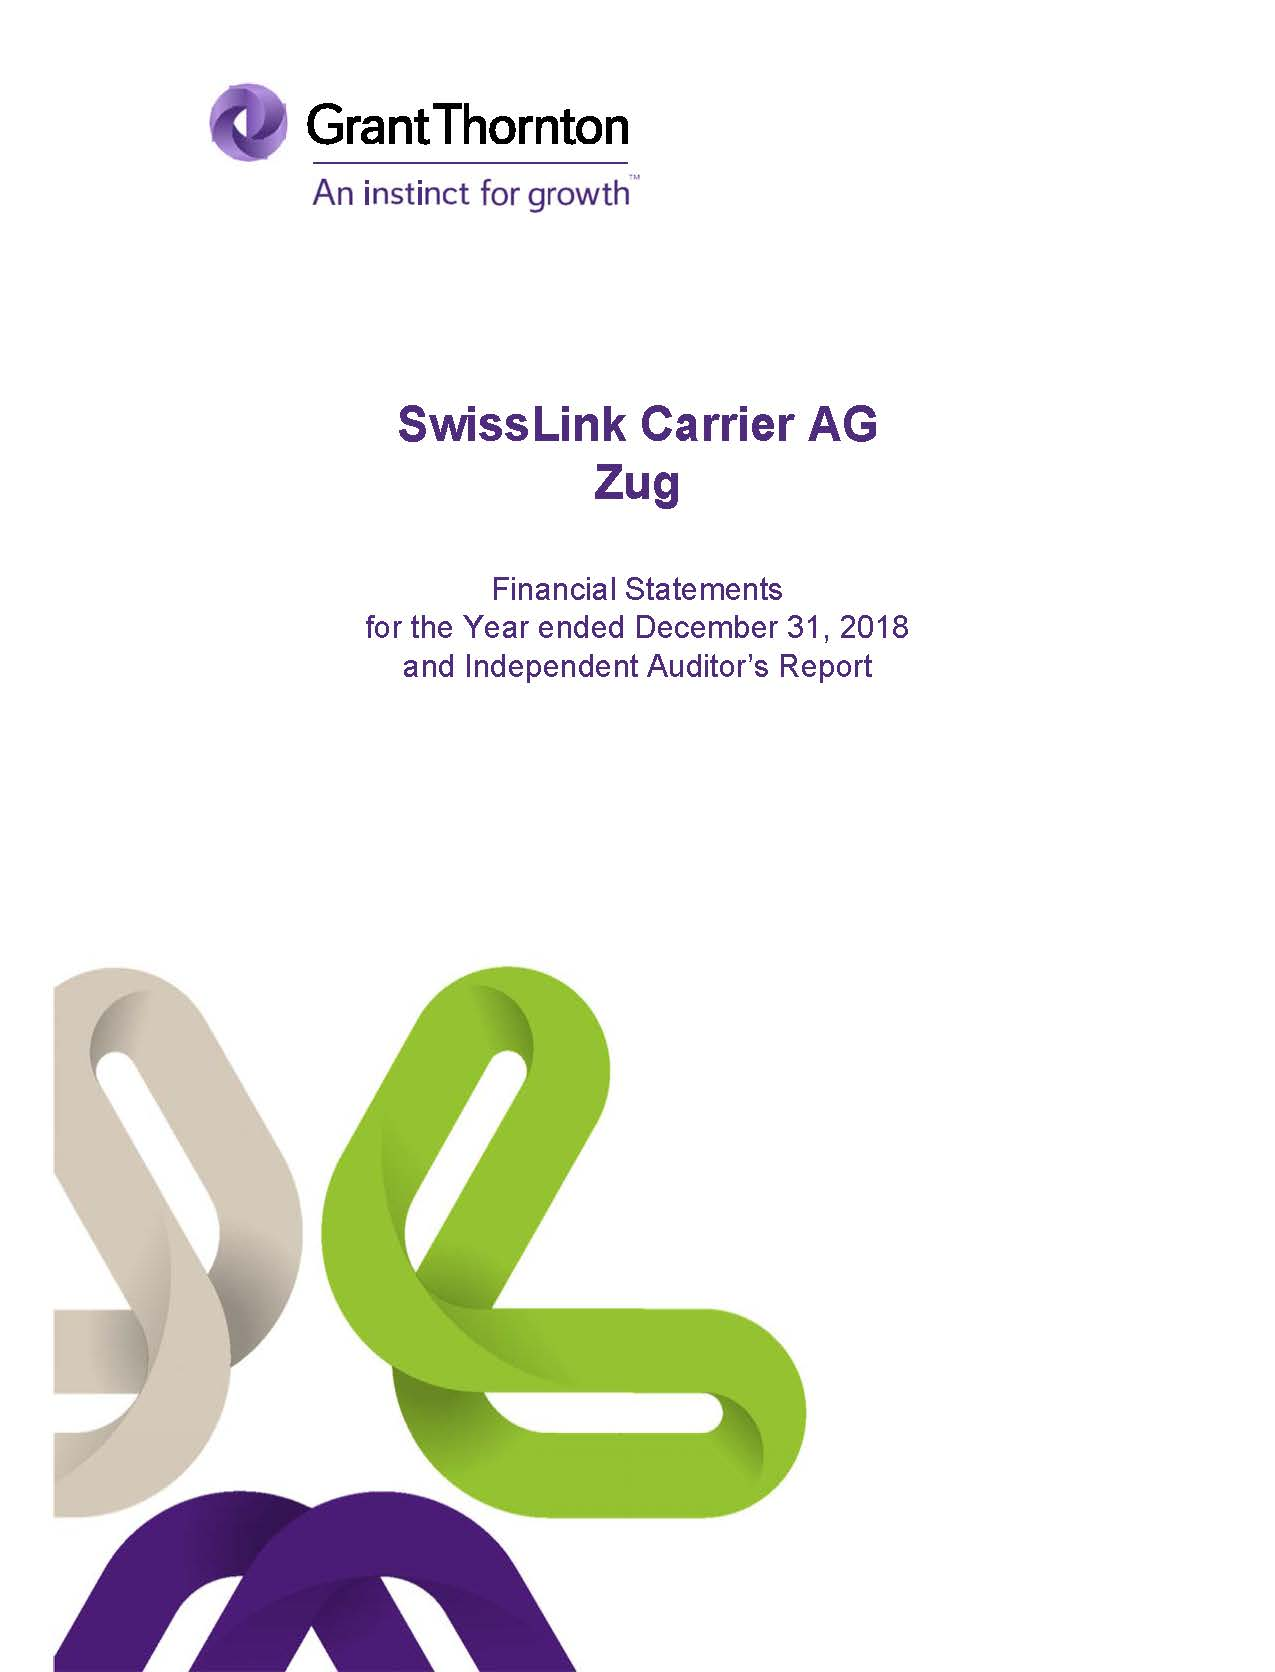 REPORT OF THE AUDITOR - SWISSLINK AG 31.12.18 (IFRS) EXHIBIT 99.2.JPG